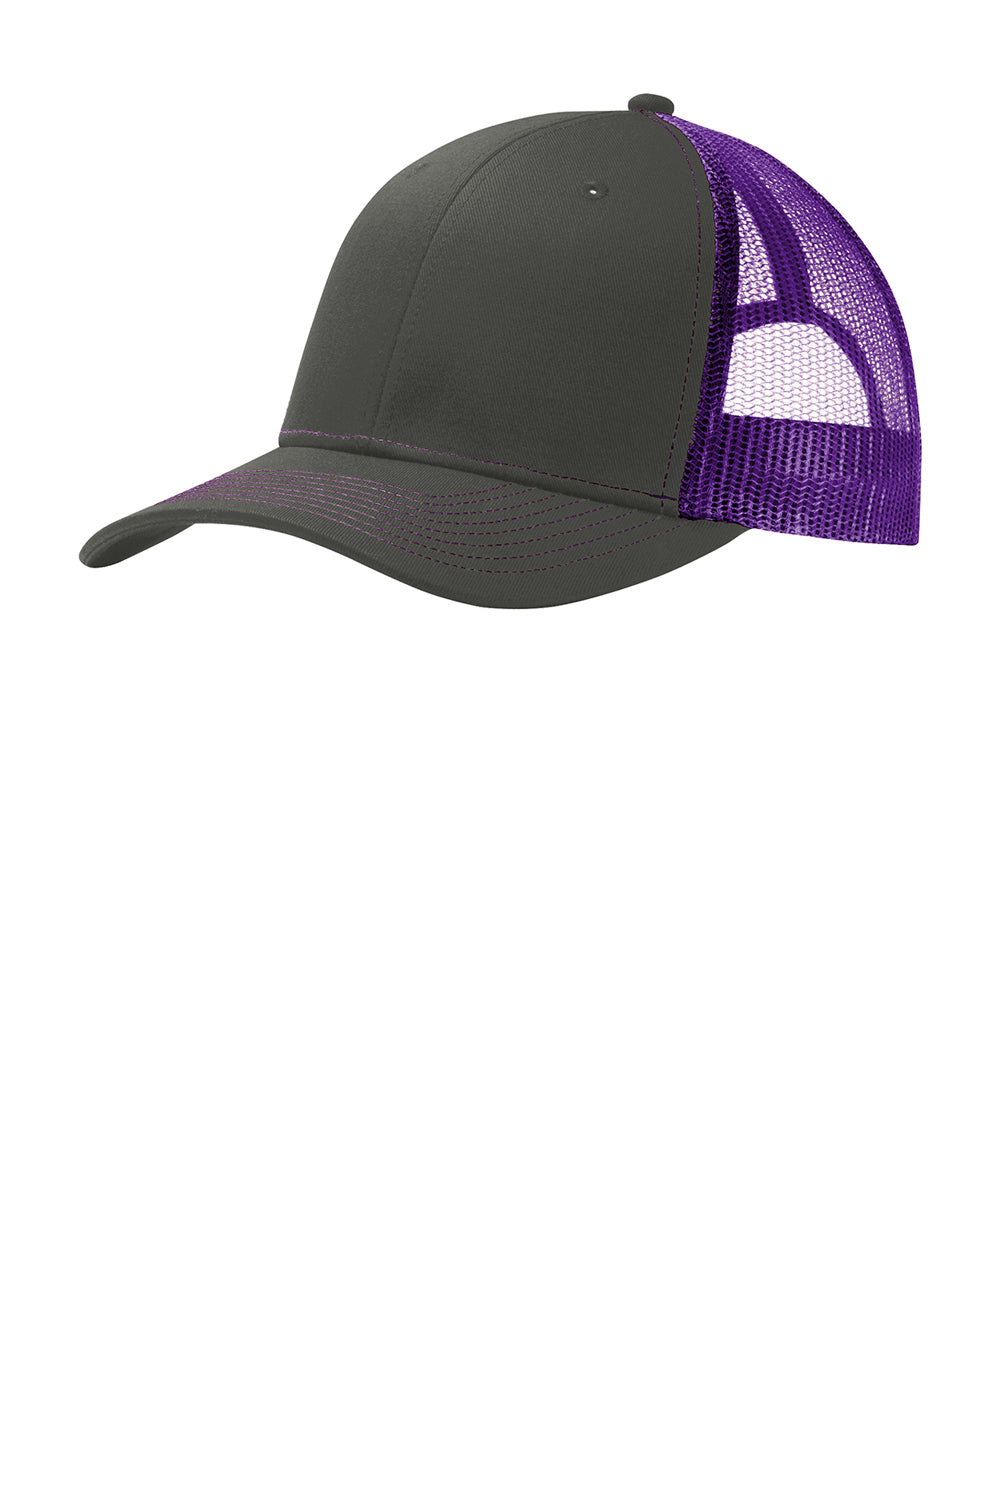 Port Authority C112 Mens Adjustable Trucker Hat Steel Grey/Purple Front